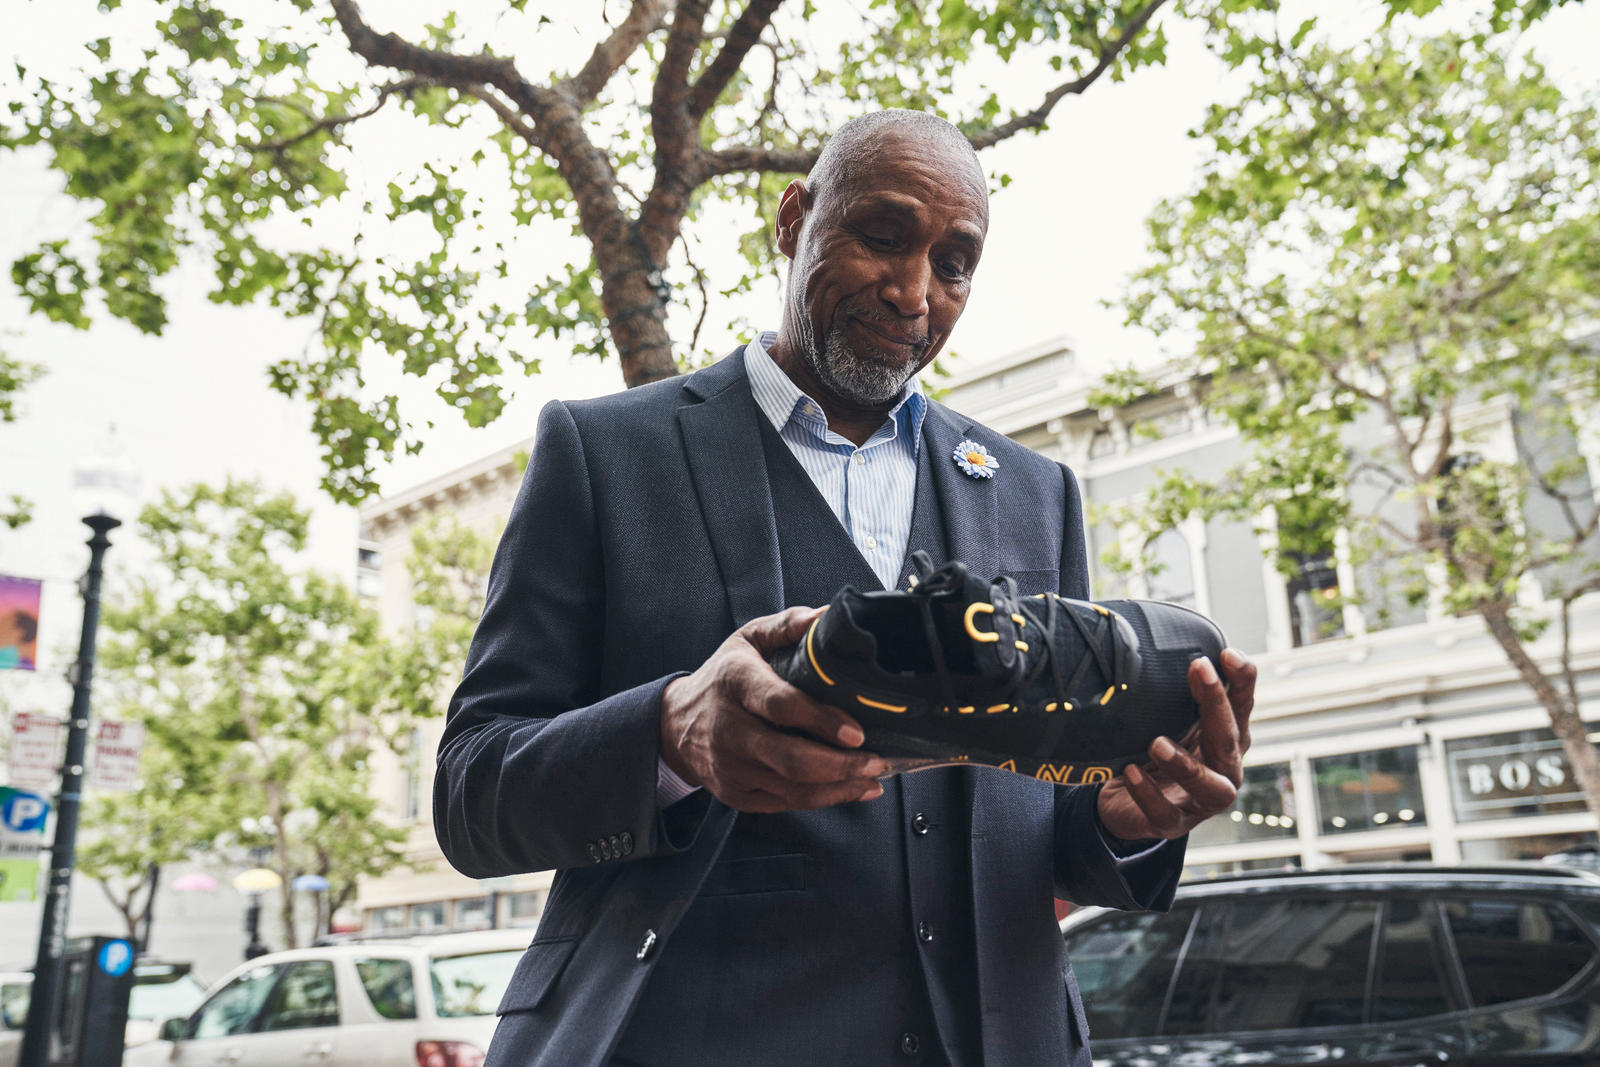 Ralph Walker, Stephen's now retired personal security guard, holds the Curry 6 Thank You, Oakland colorway.